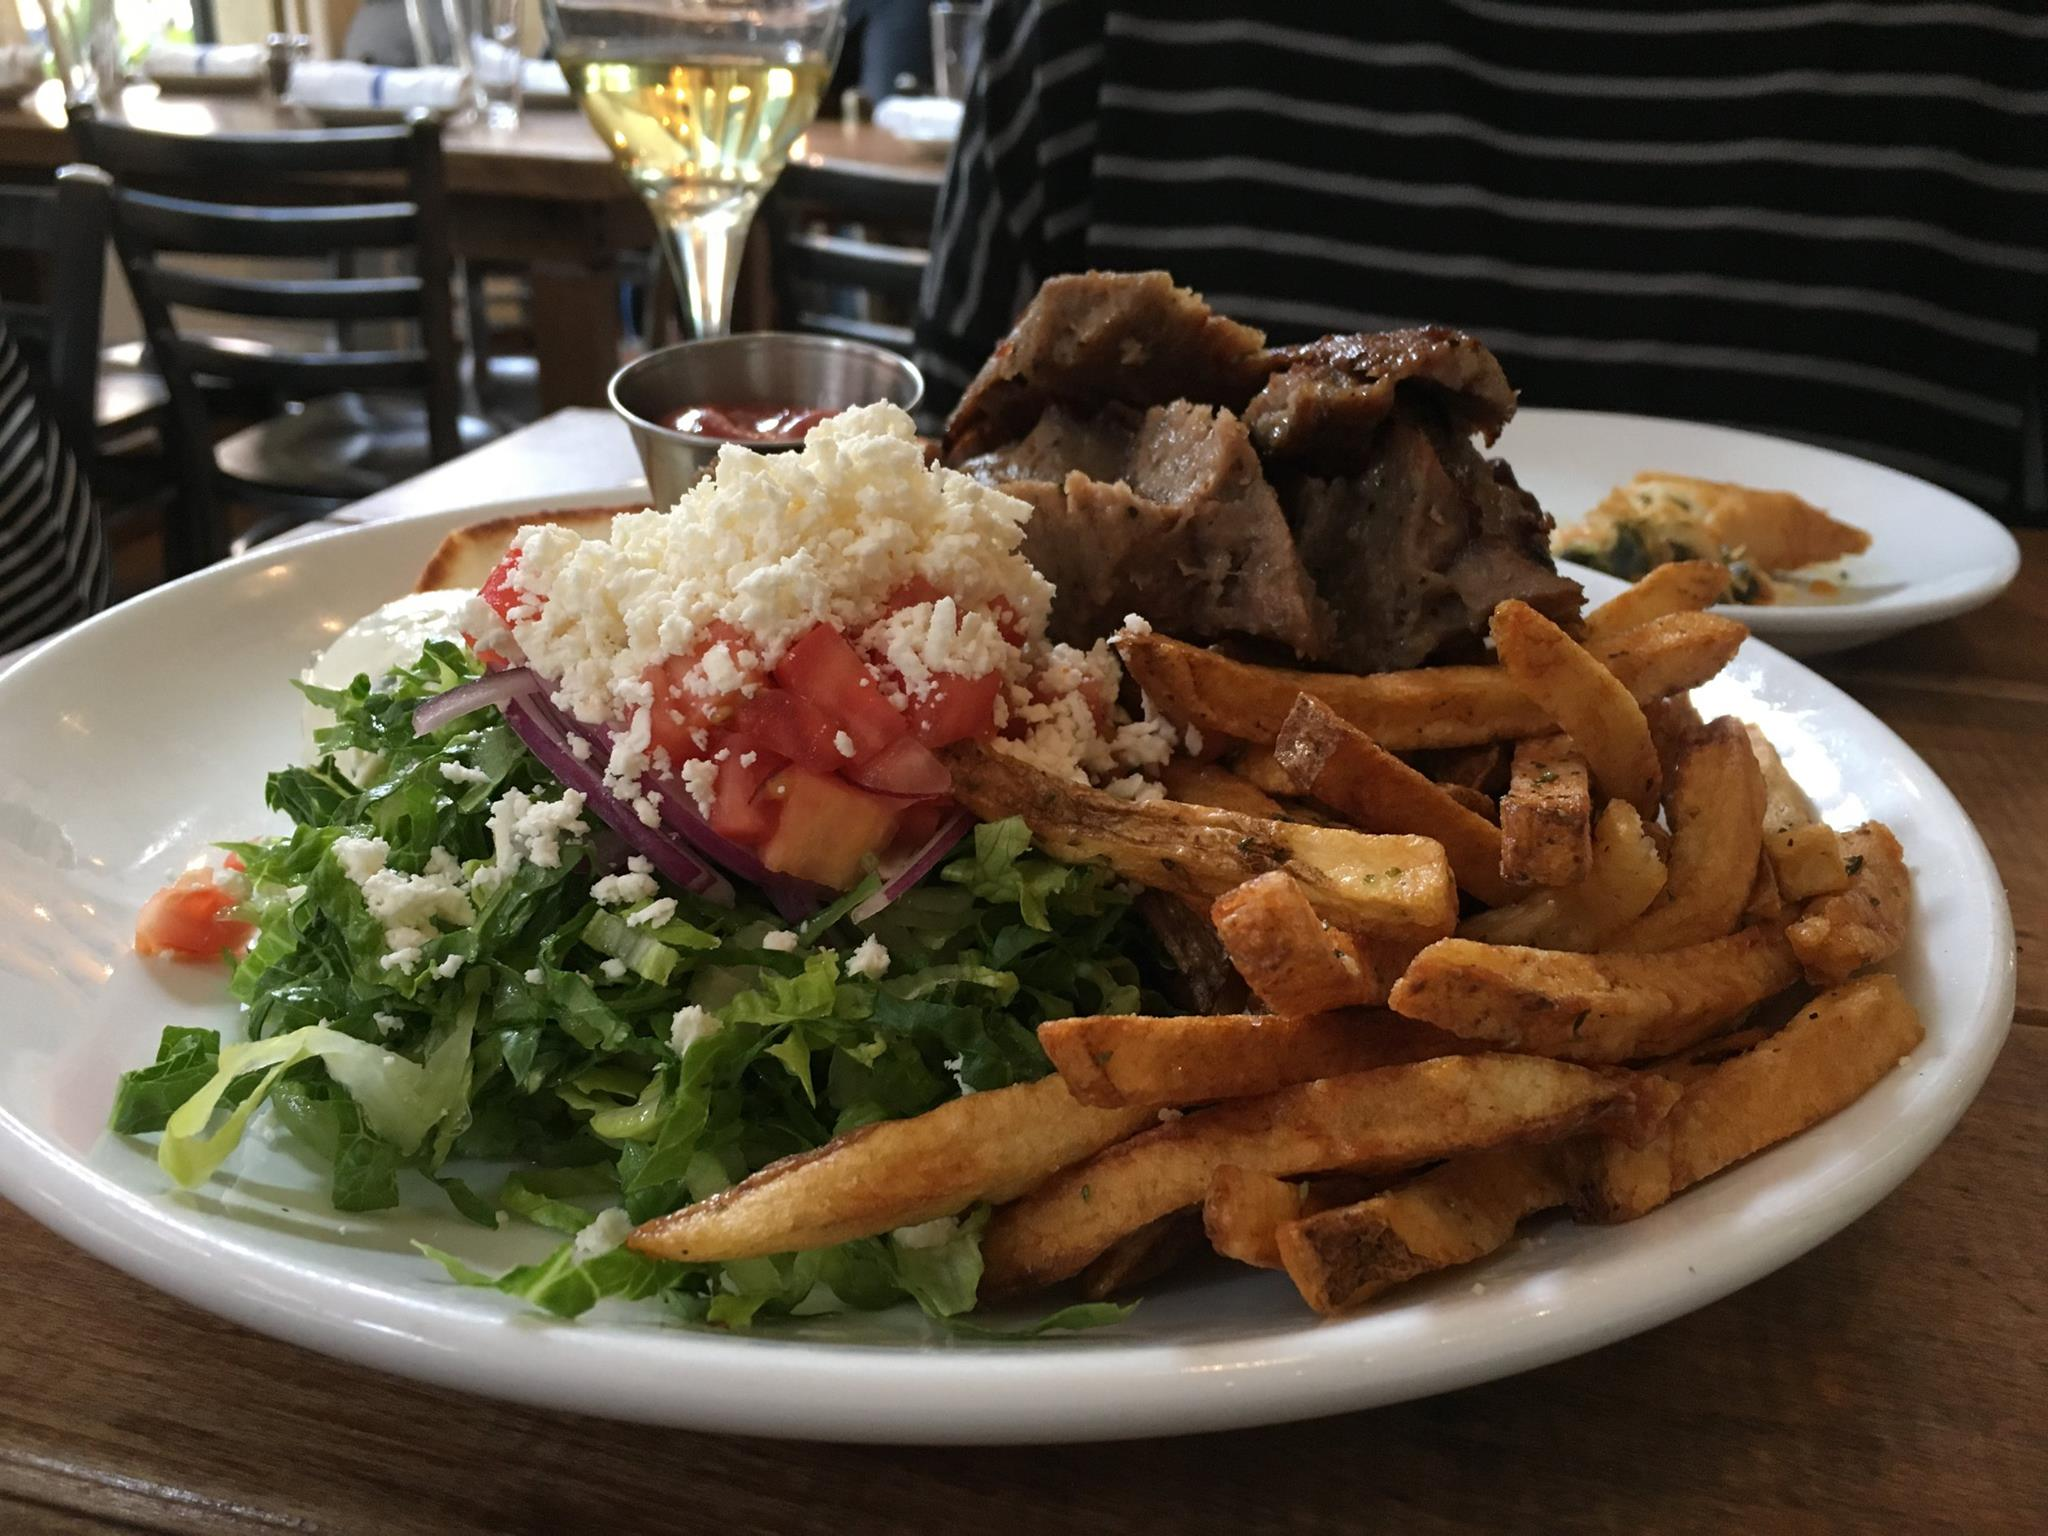 Gyros with Greek salad and yes, French fries because who wants rice with lunch?